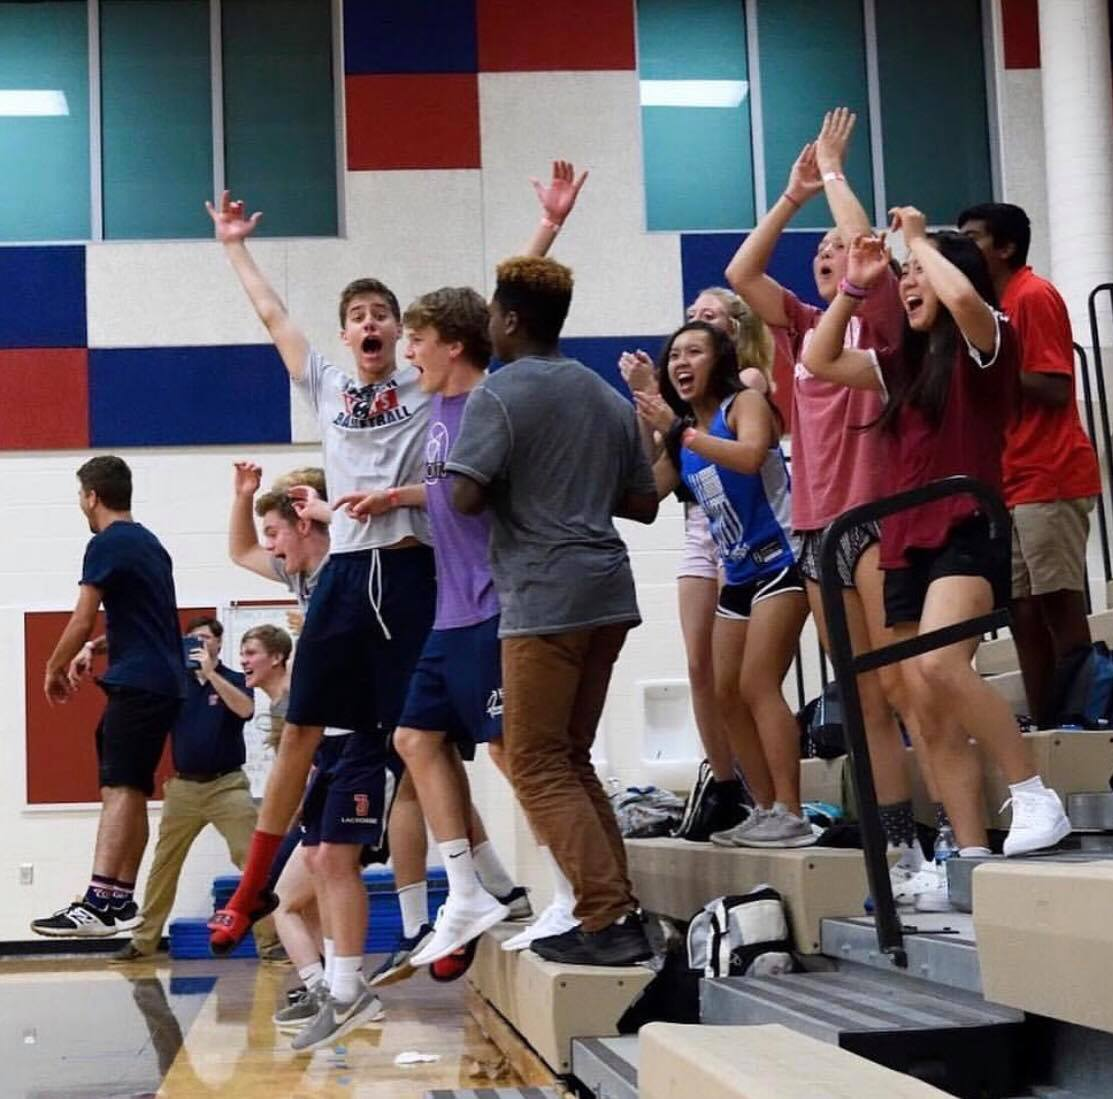 During a Jefferson volleyball home game against Marshall High School, senior Will Pemble in purple cheers as the team scores a point.